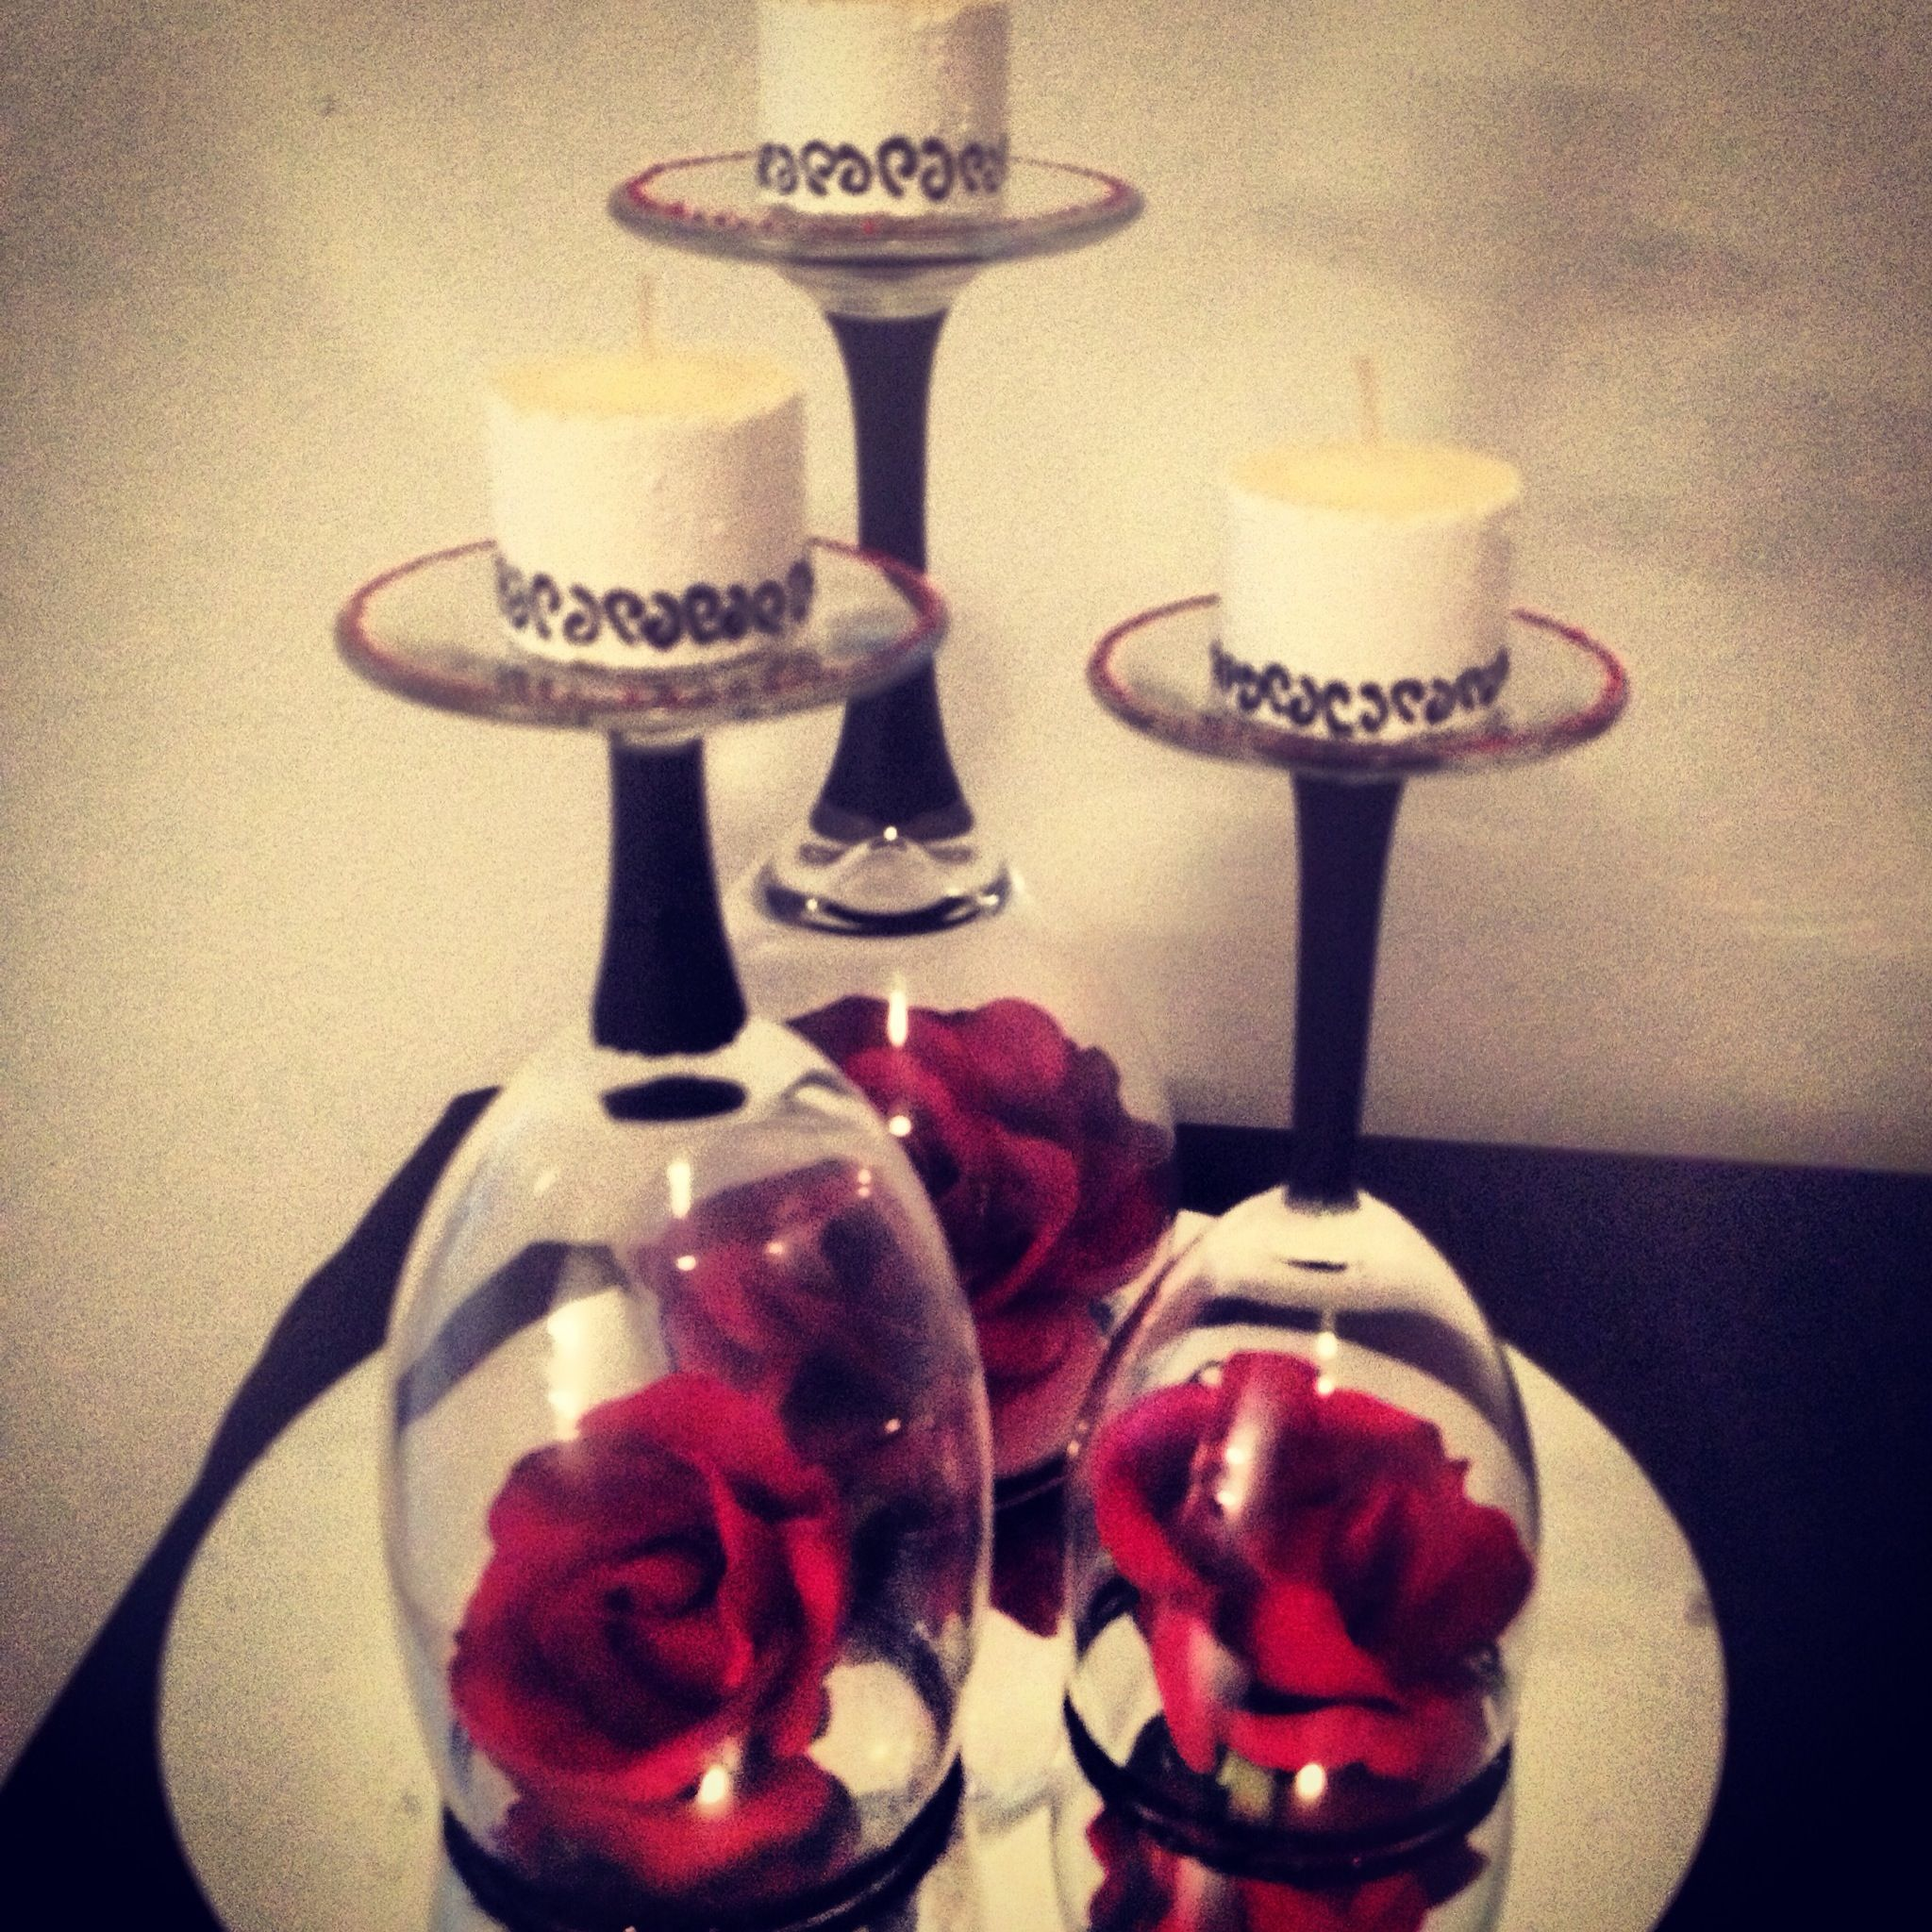 Pin By Xoxo On Diy Red And White Weddings Black Red Wedding Centerpieces